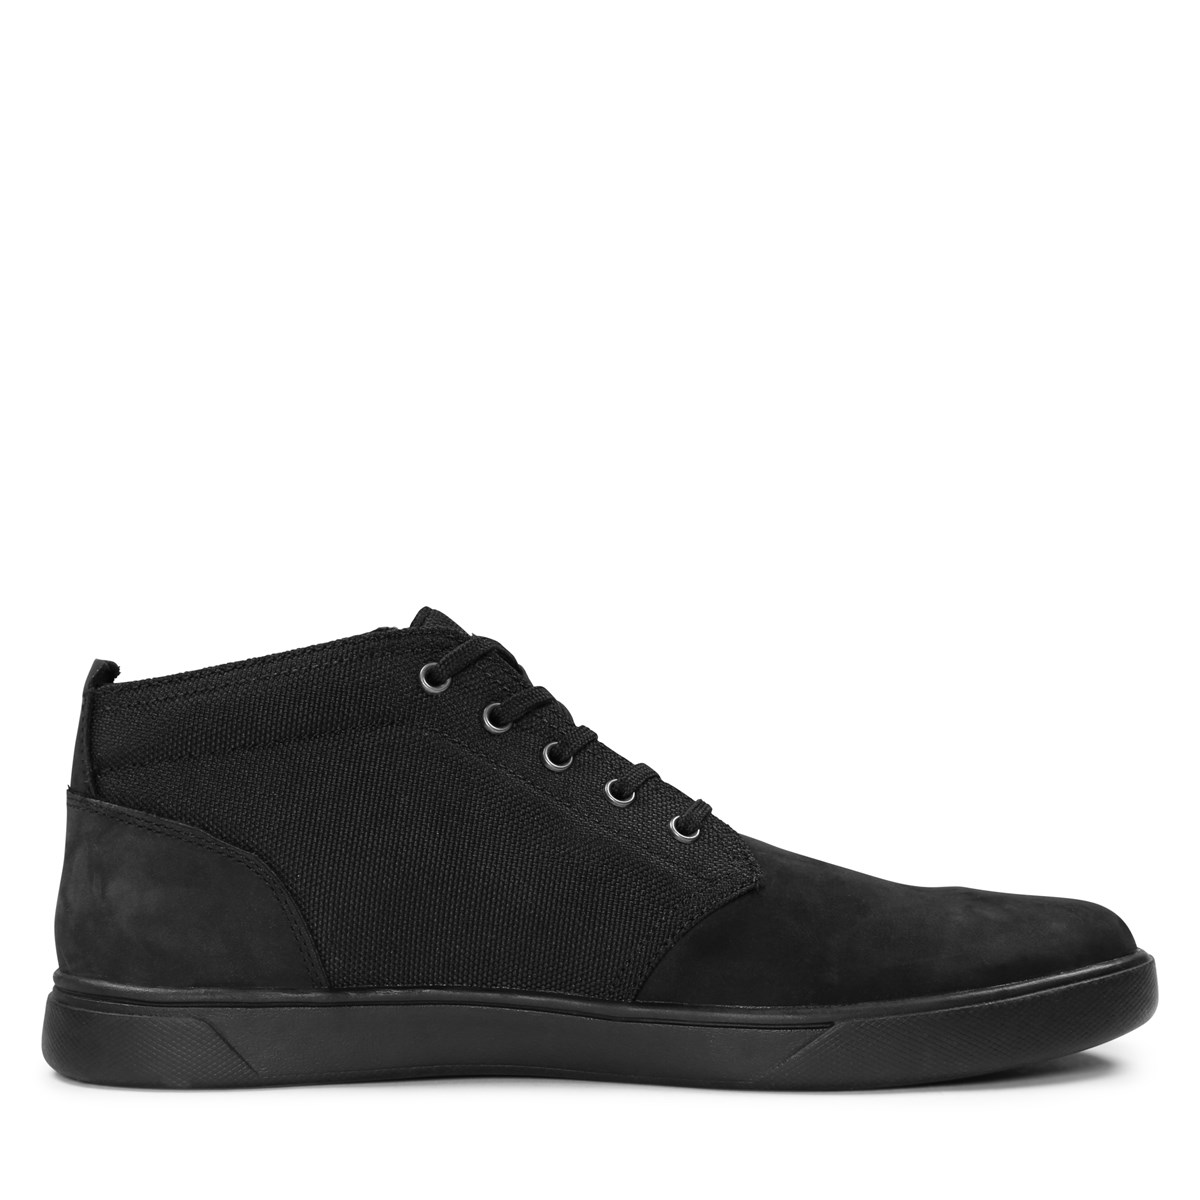 Men's Groveton Chukka Shoes in Black